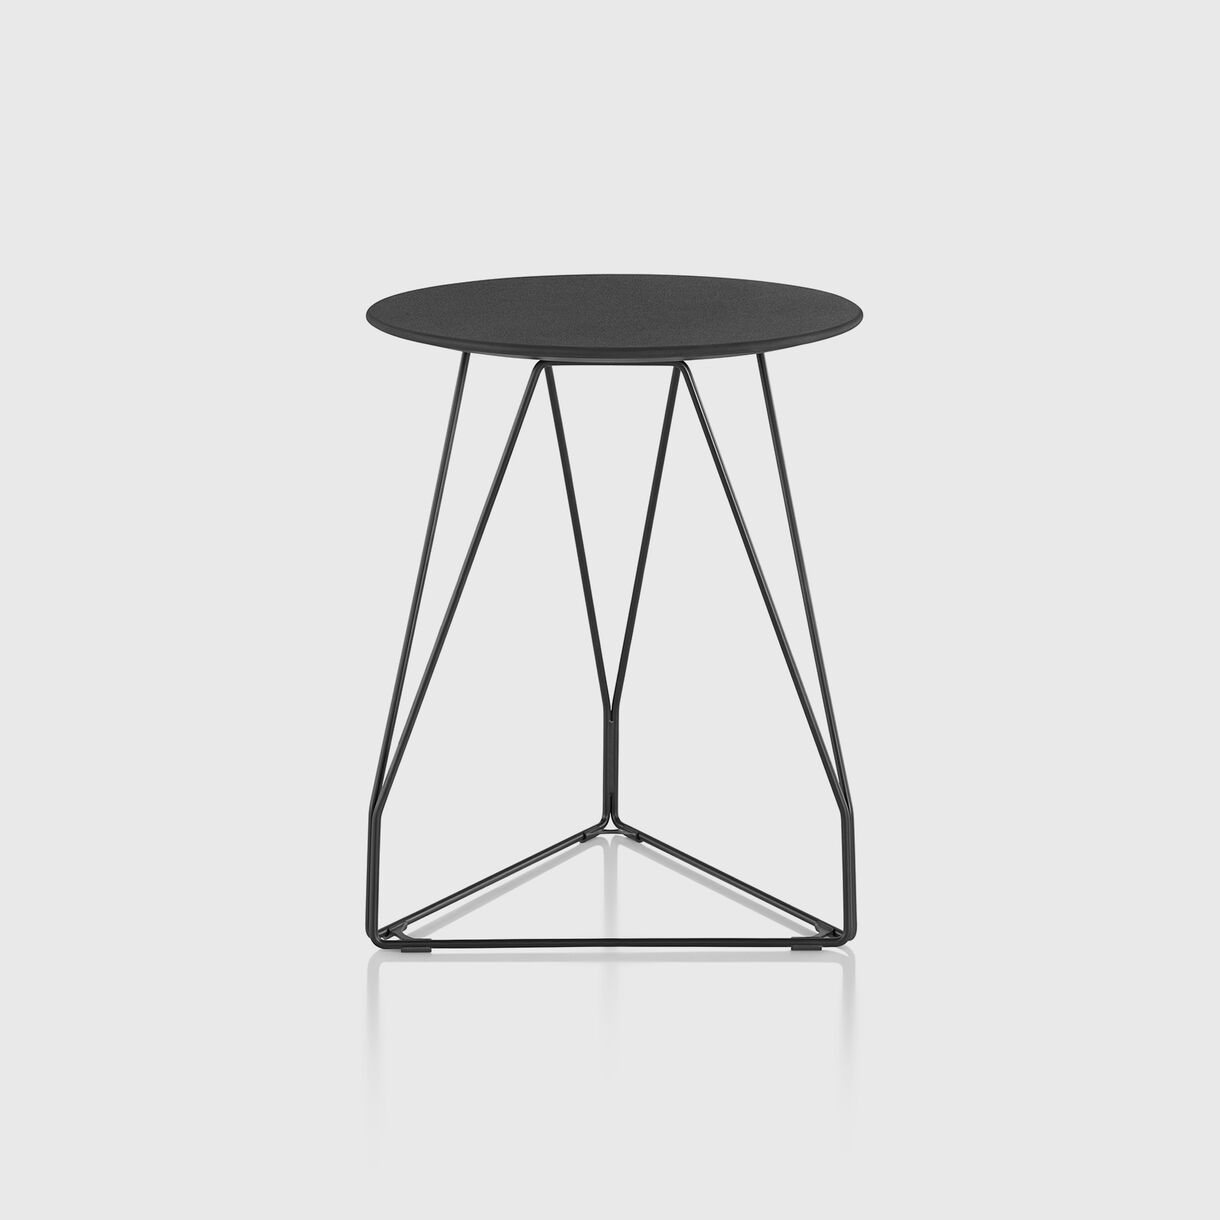 Polygon Wire Table, High